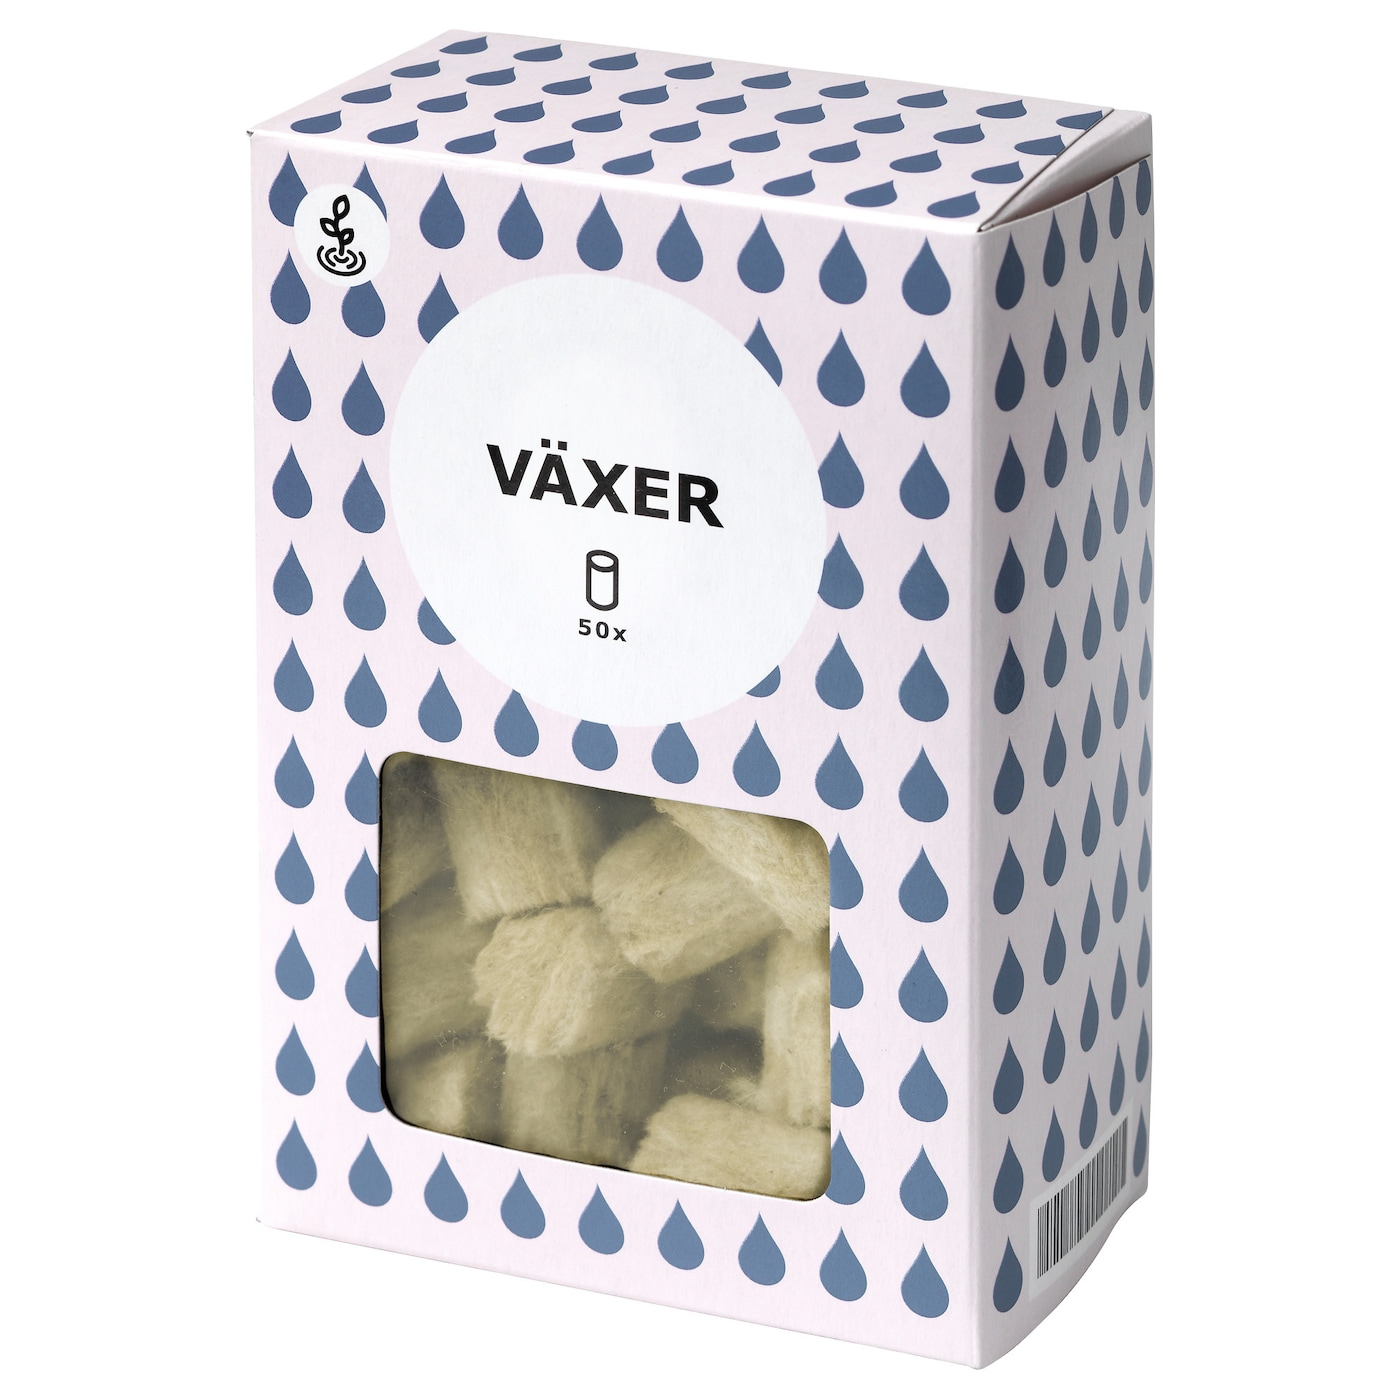 IKEA VÄXER growing media Can also be mixed with soil and used to improve drainage in potted plants.